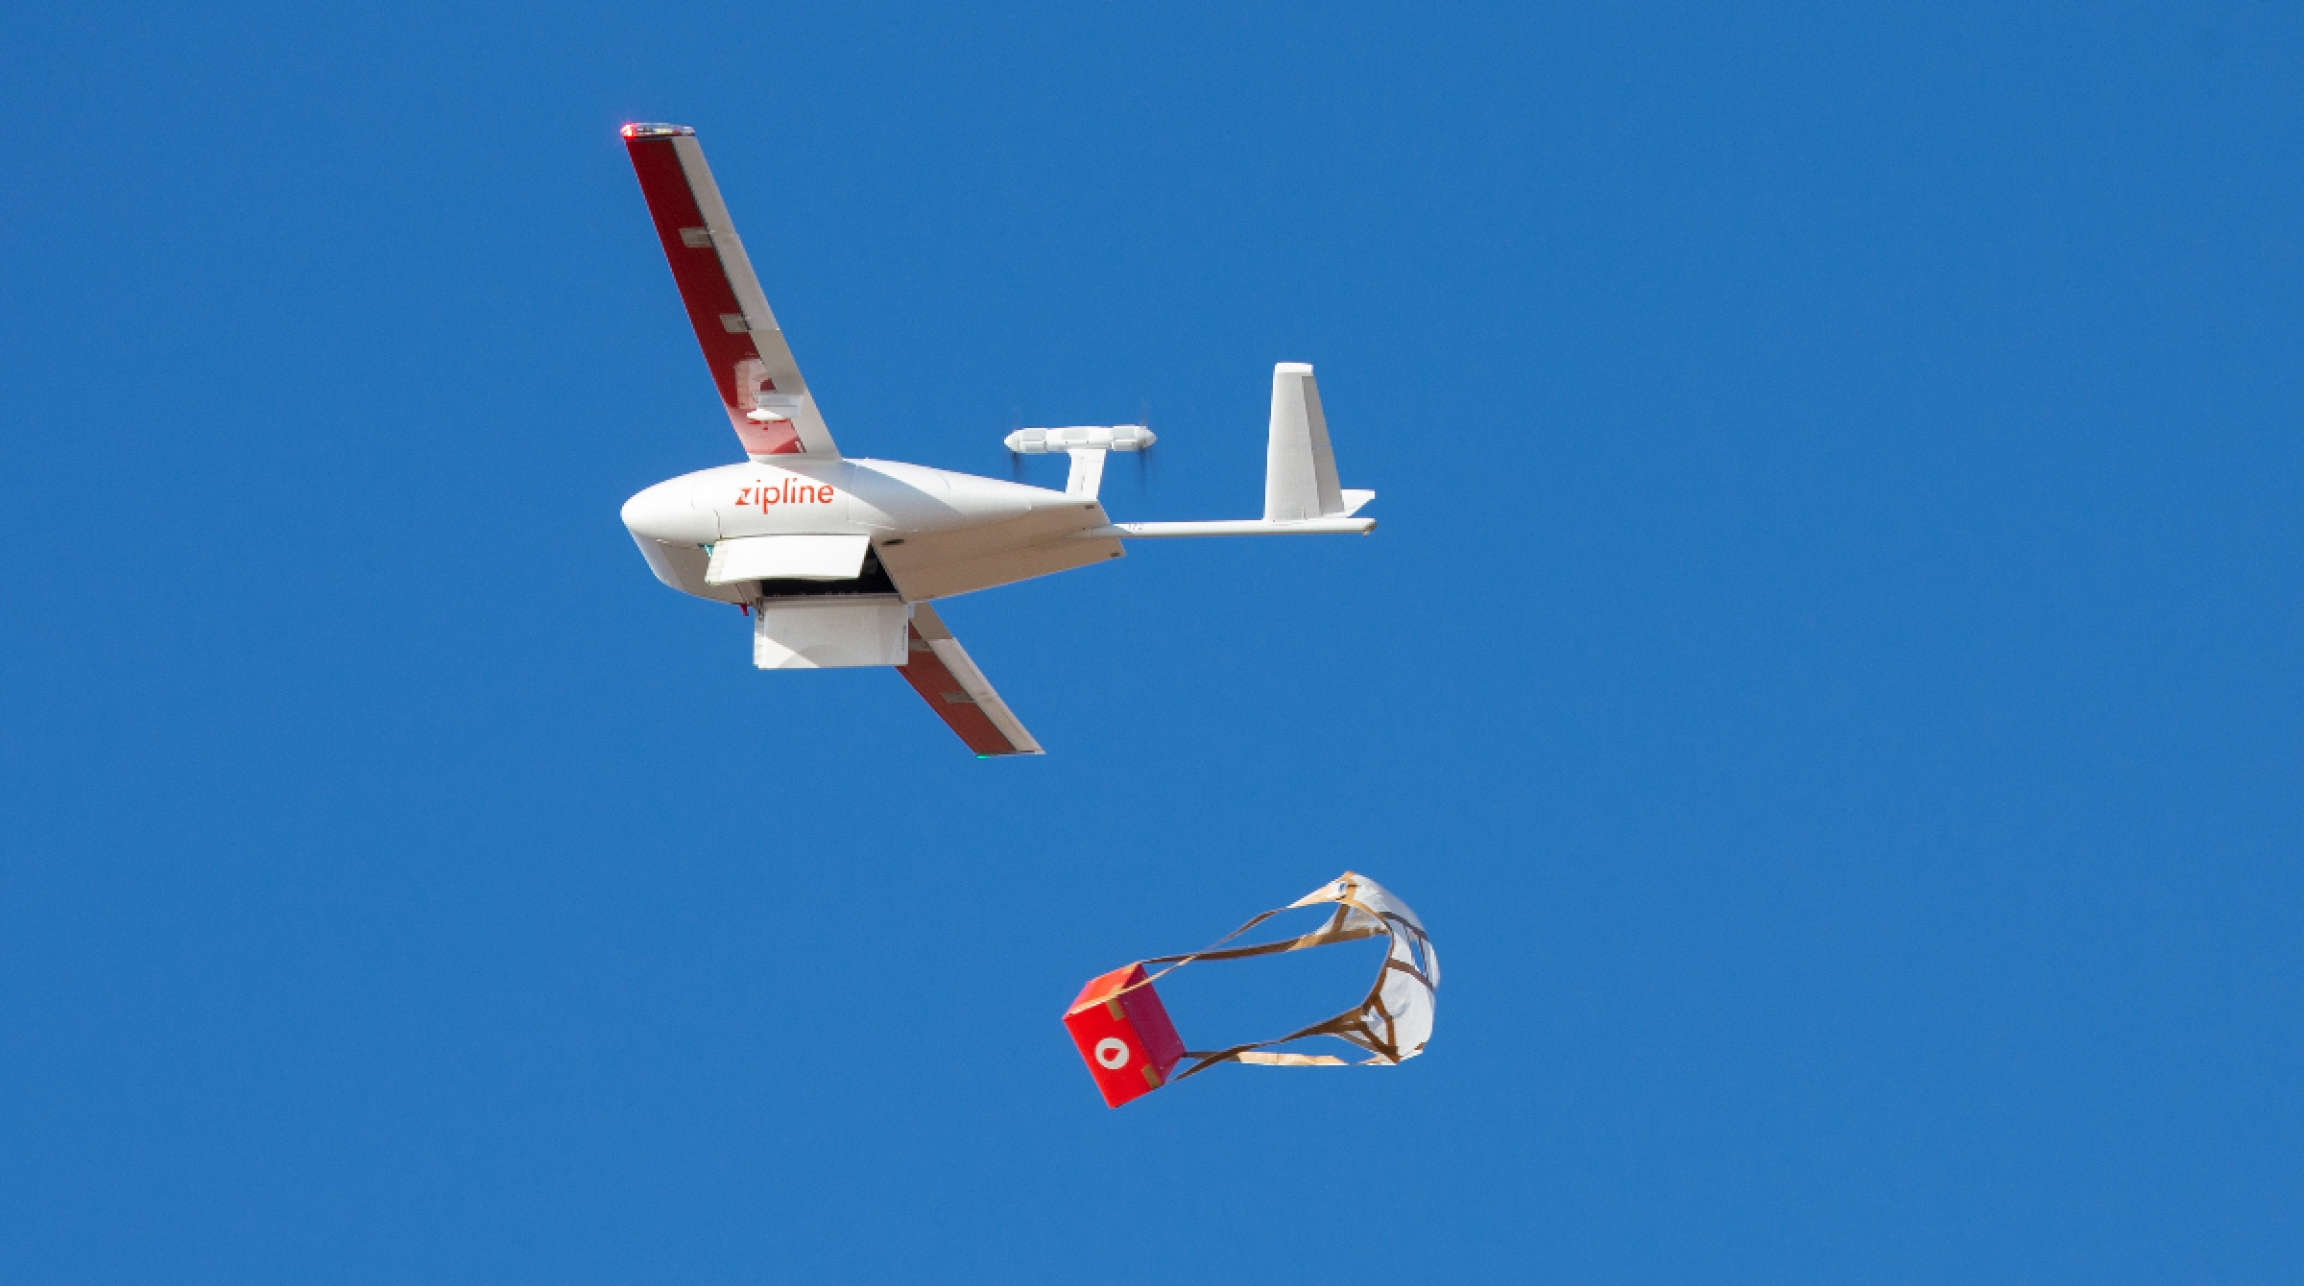 A small drone drops a red package